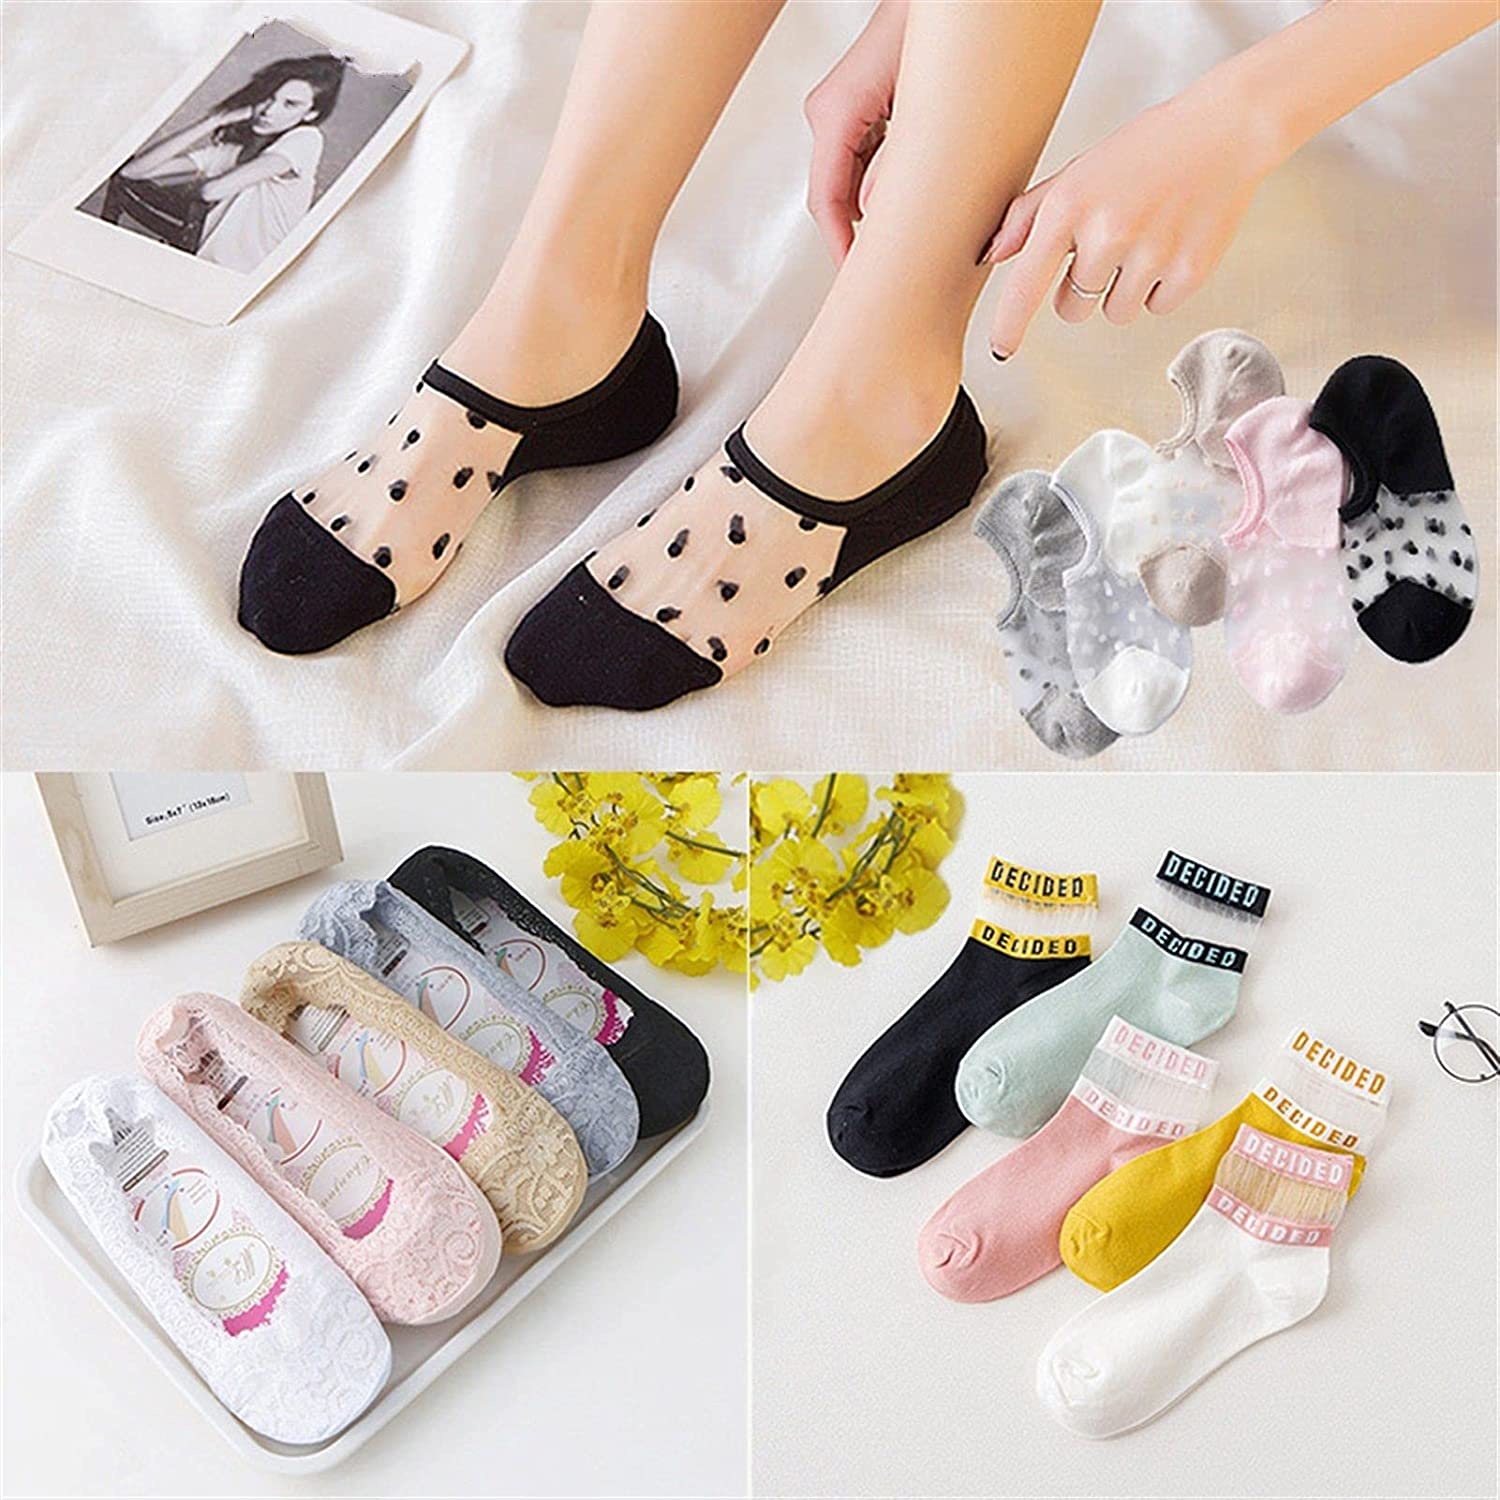 5 Pairs Women's Lace No Show Socks Low Cut Non Slip, Invisible With Flats, Boat Liner Socks (Color : 24, Size : 5 Pairs)